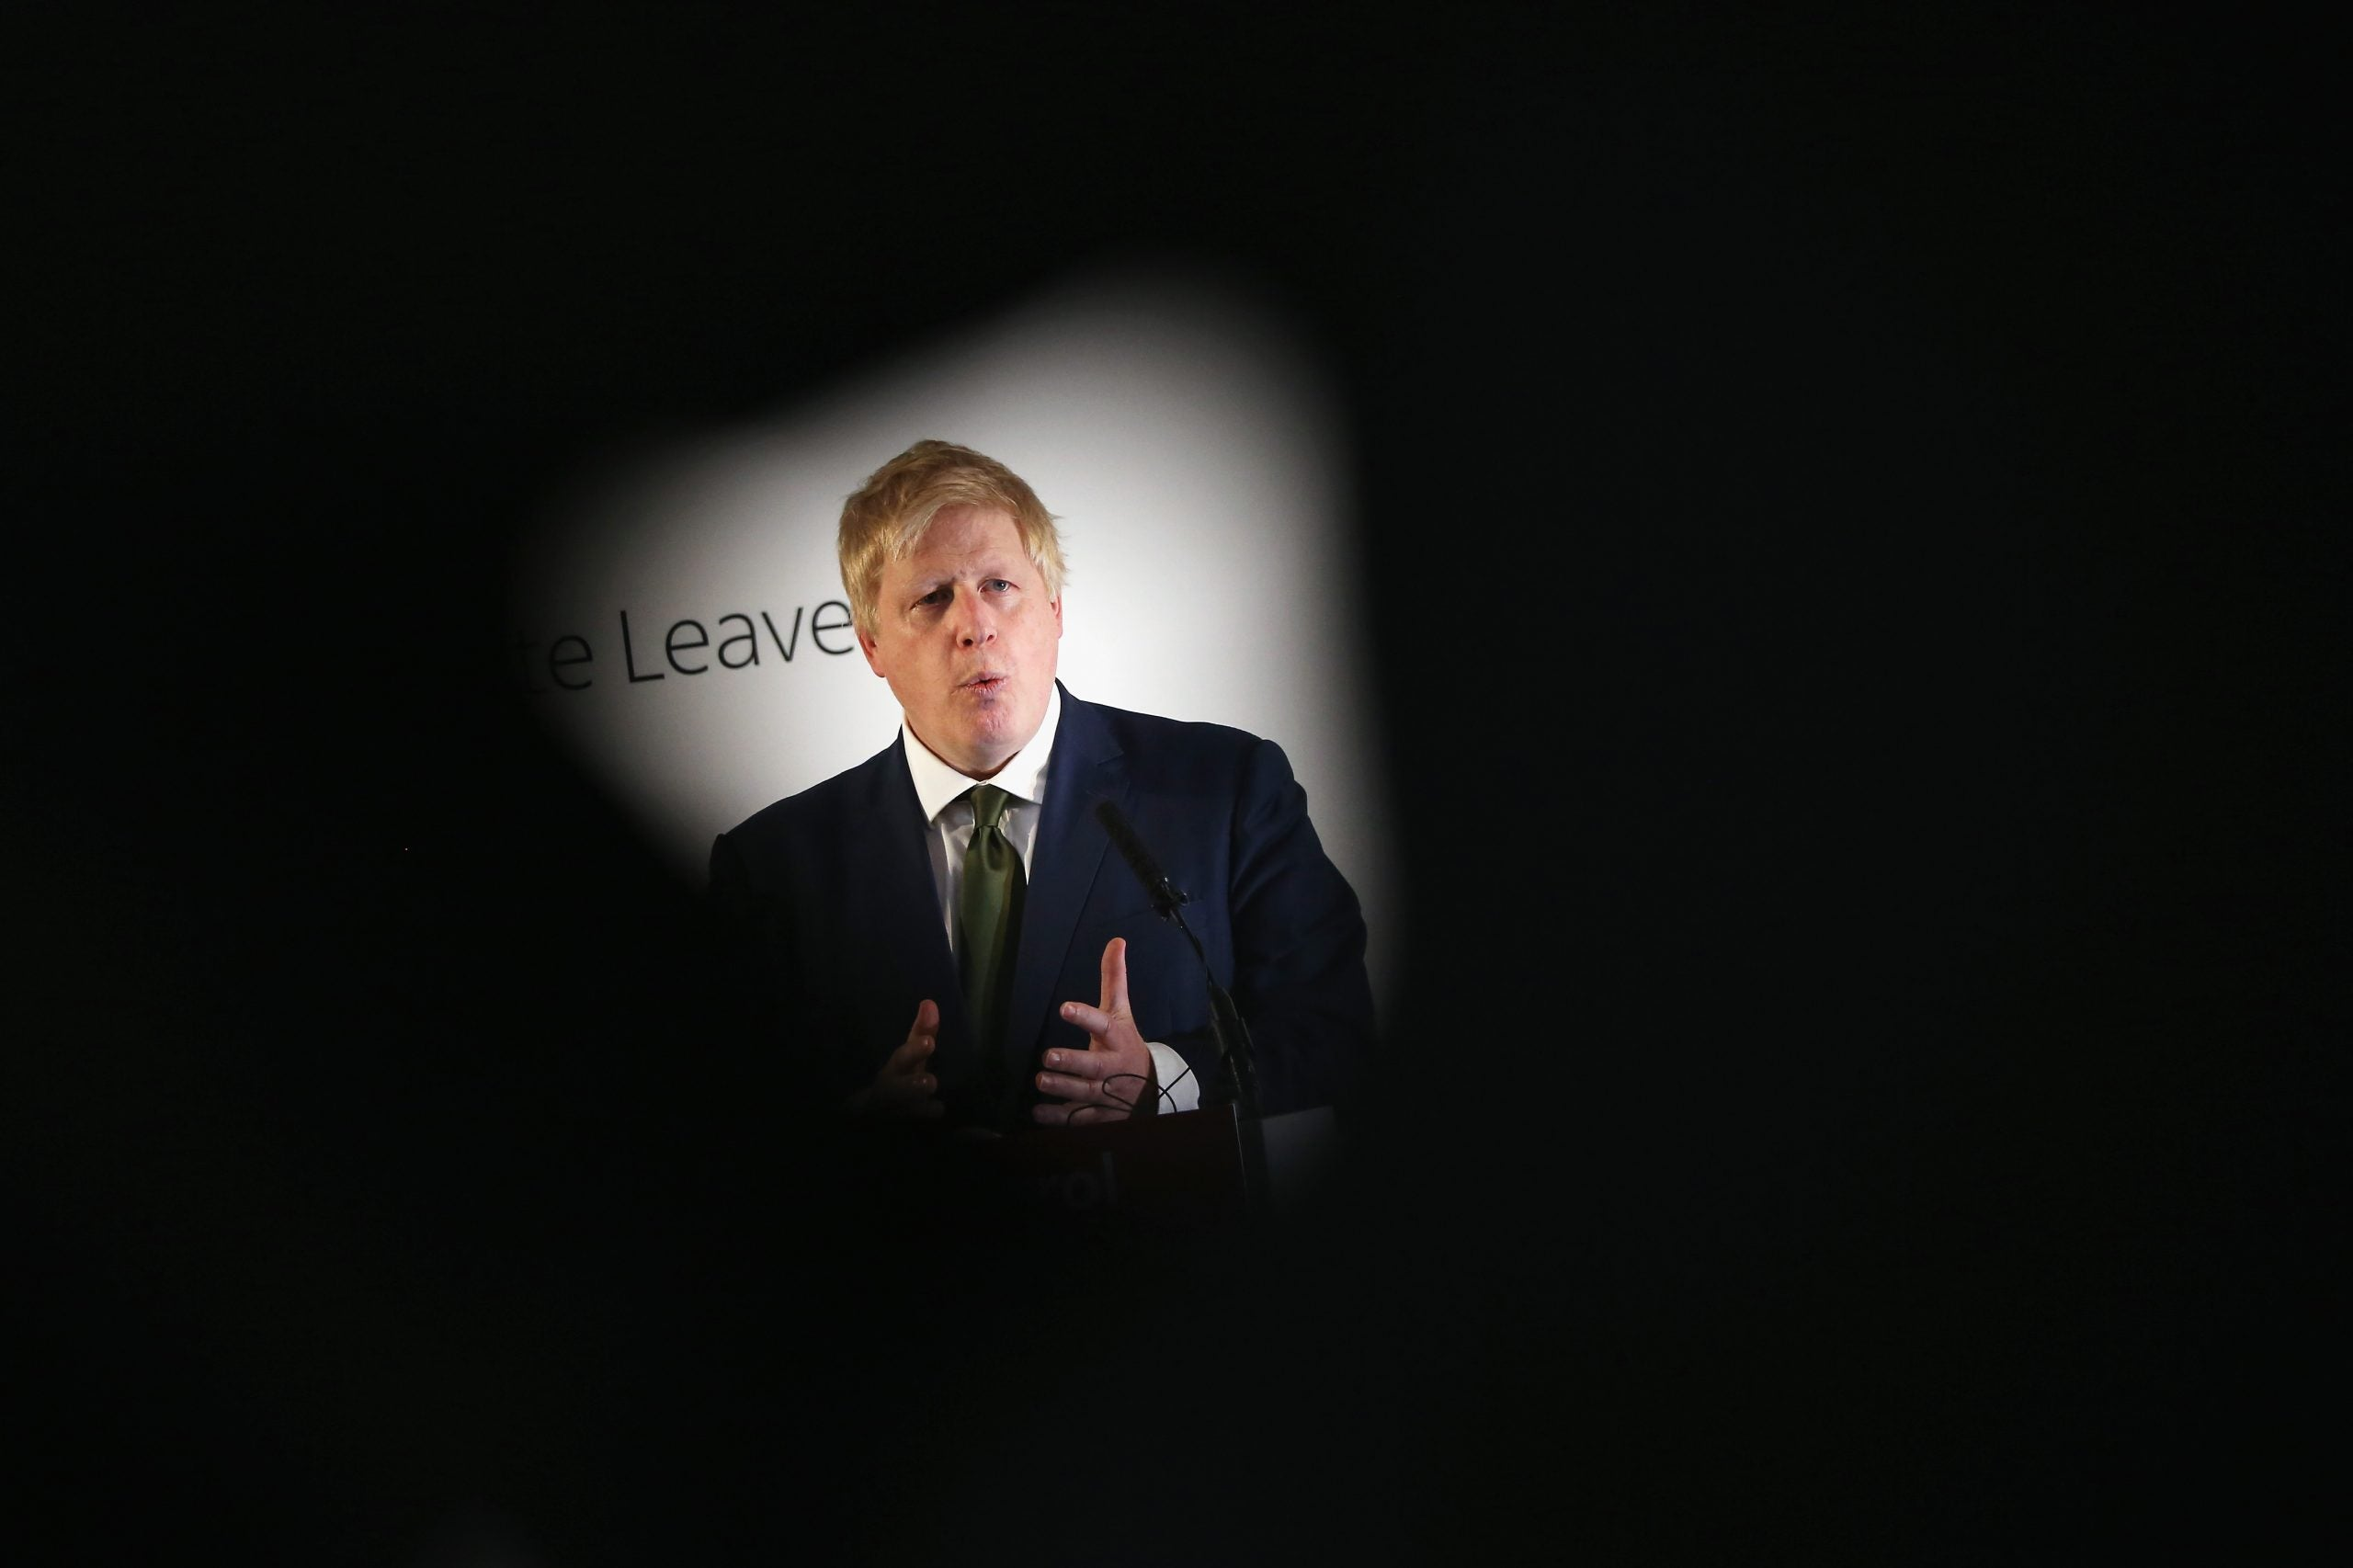 Repellent, chaotic and a serial liar, Boris Johnson would be a catastrophic prime minister